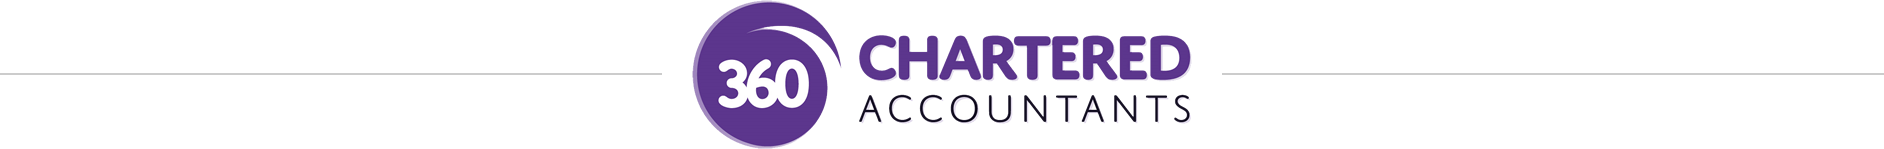 360 Chartered Accountants Case Study Logo